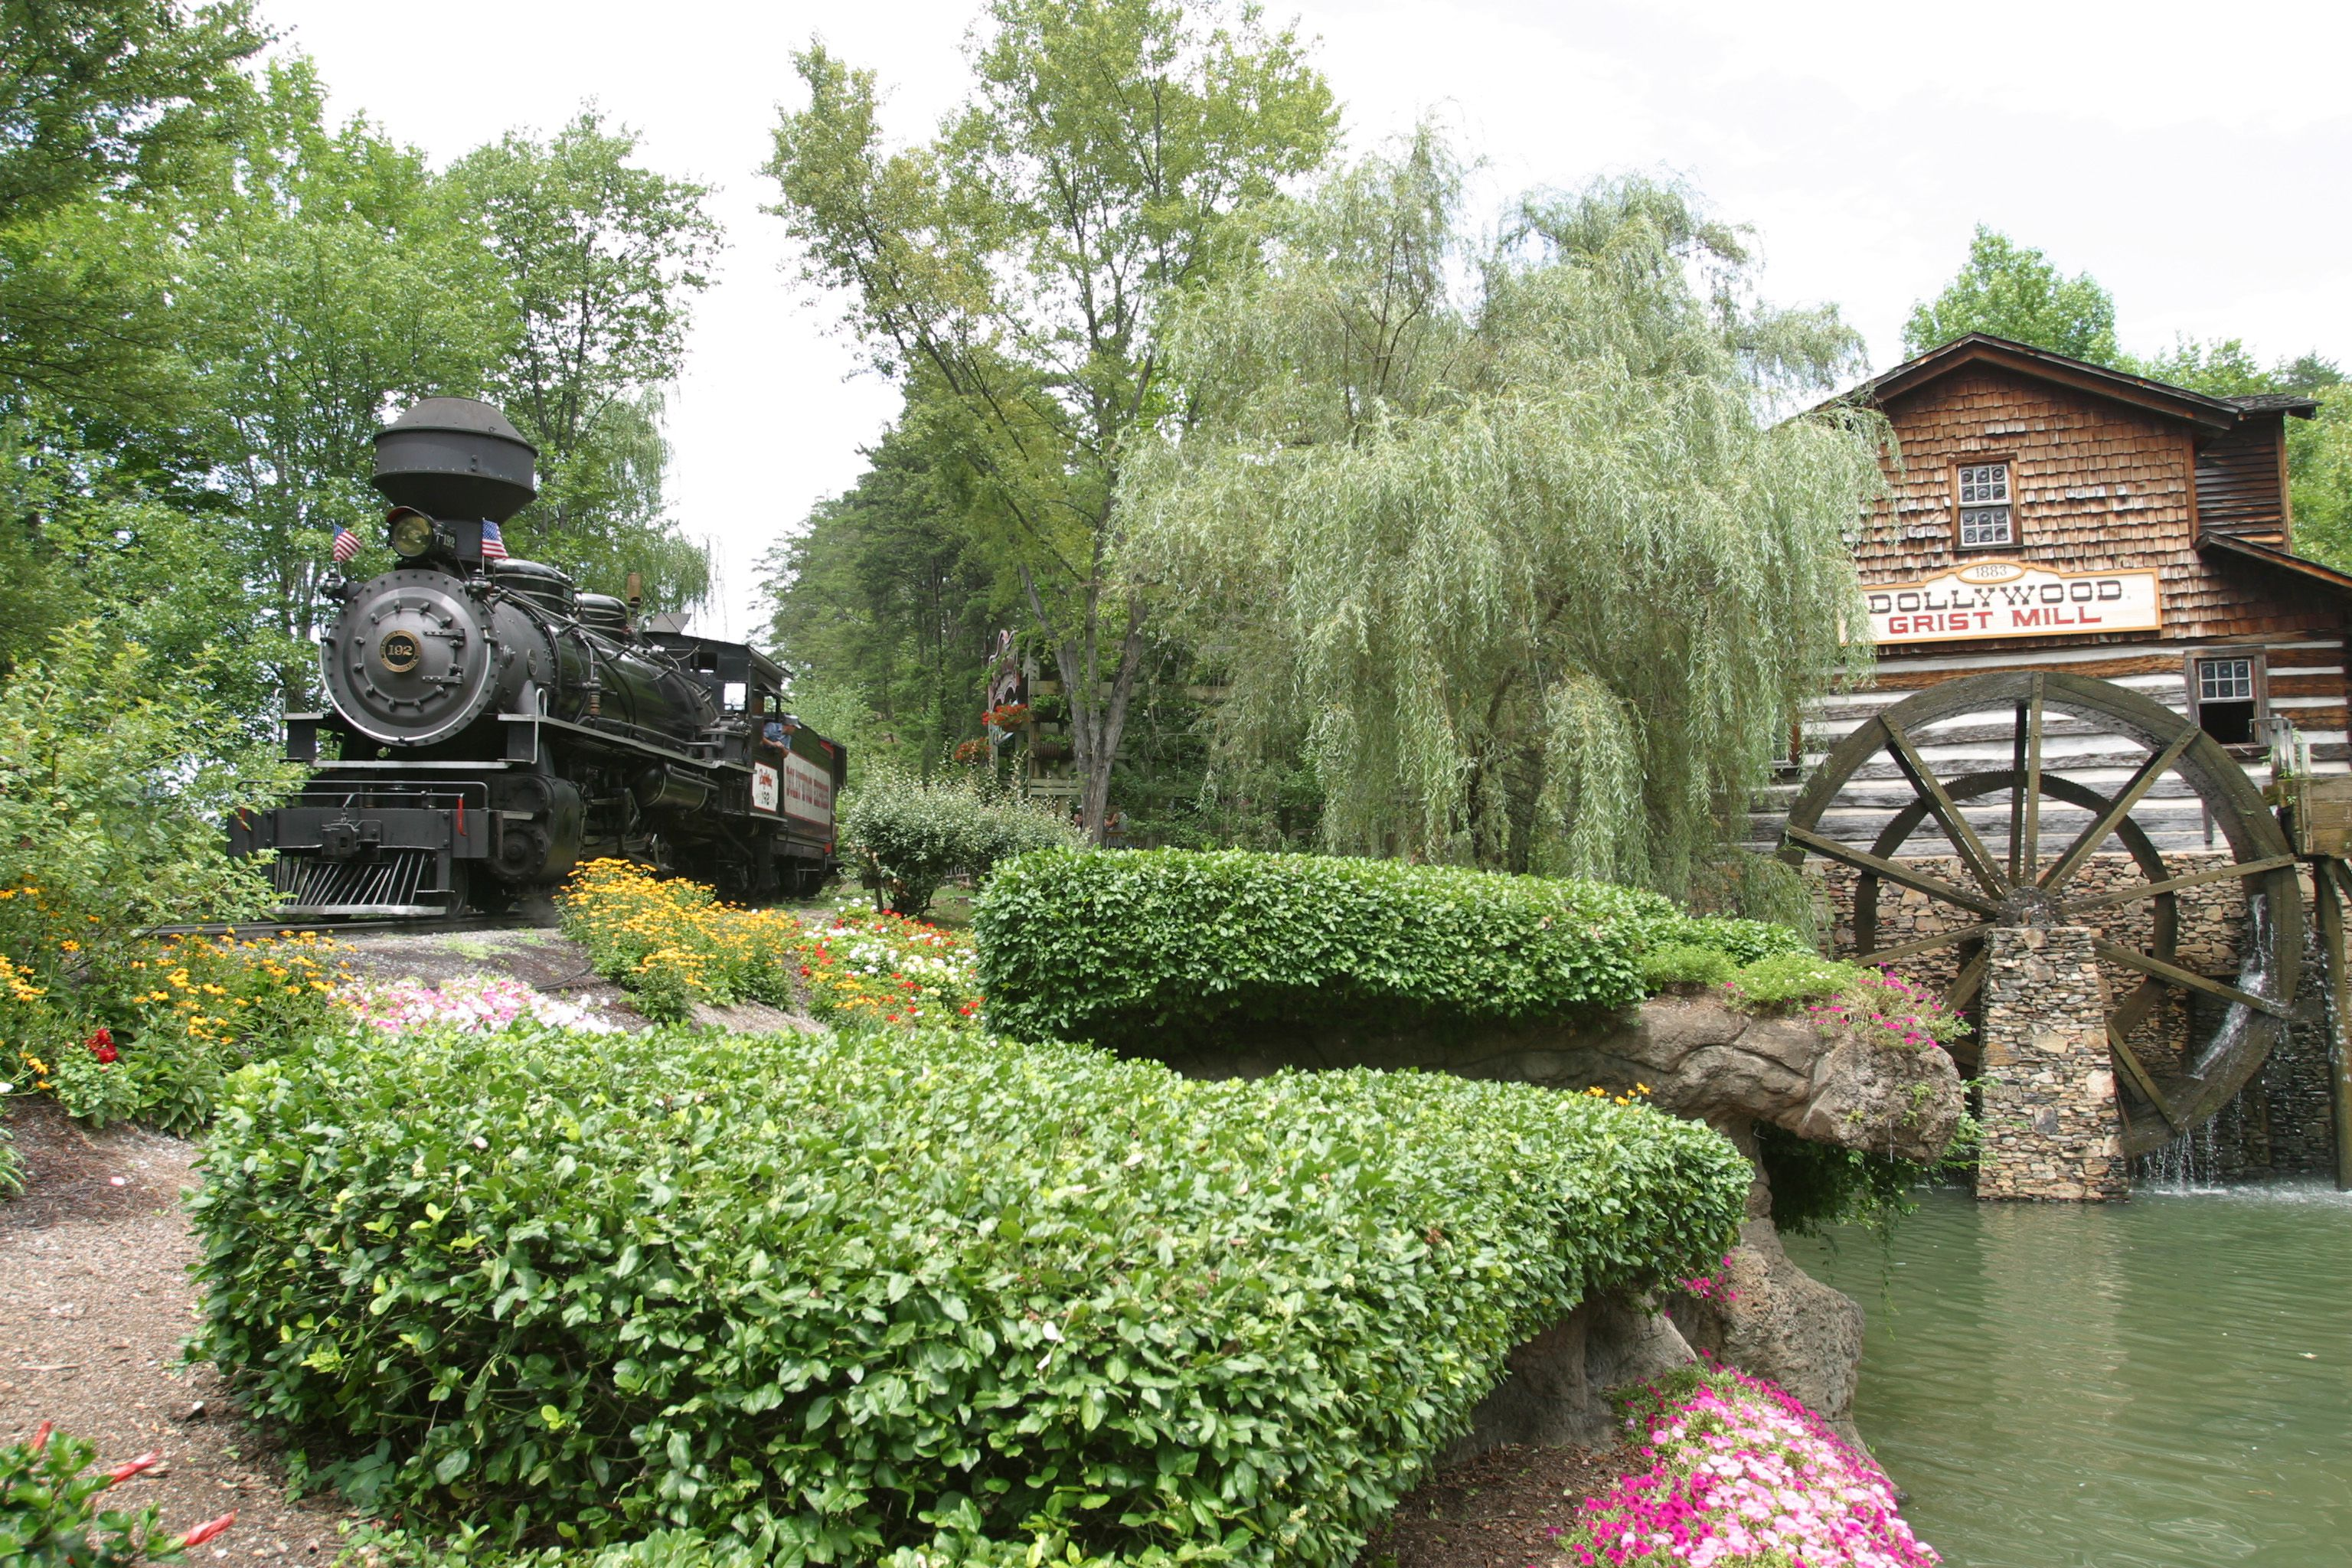 Can a New Englander have fun at Dollywood? - The Boston Globe